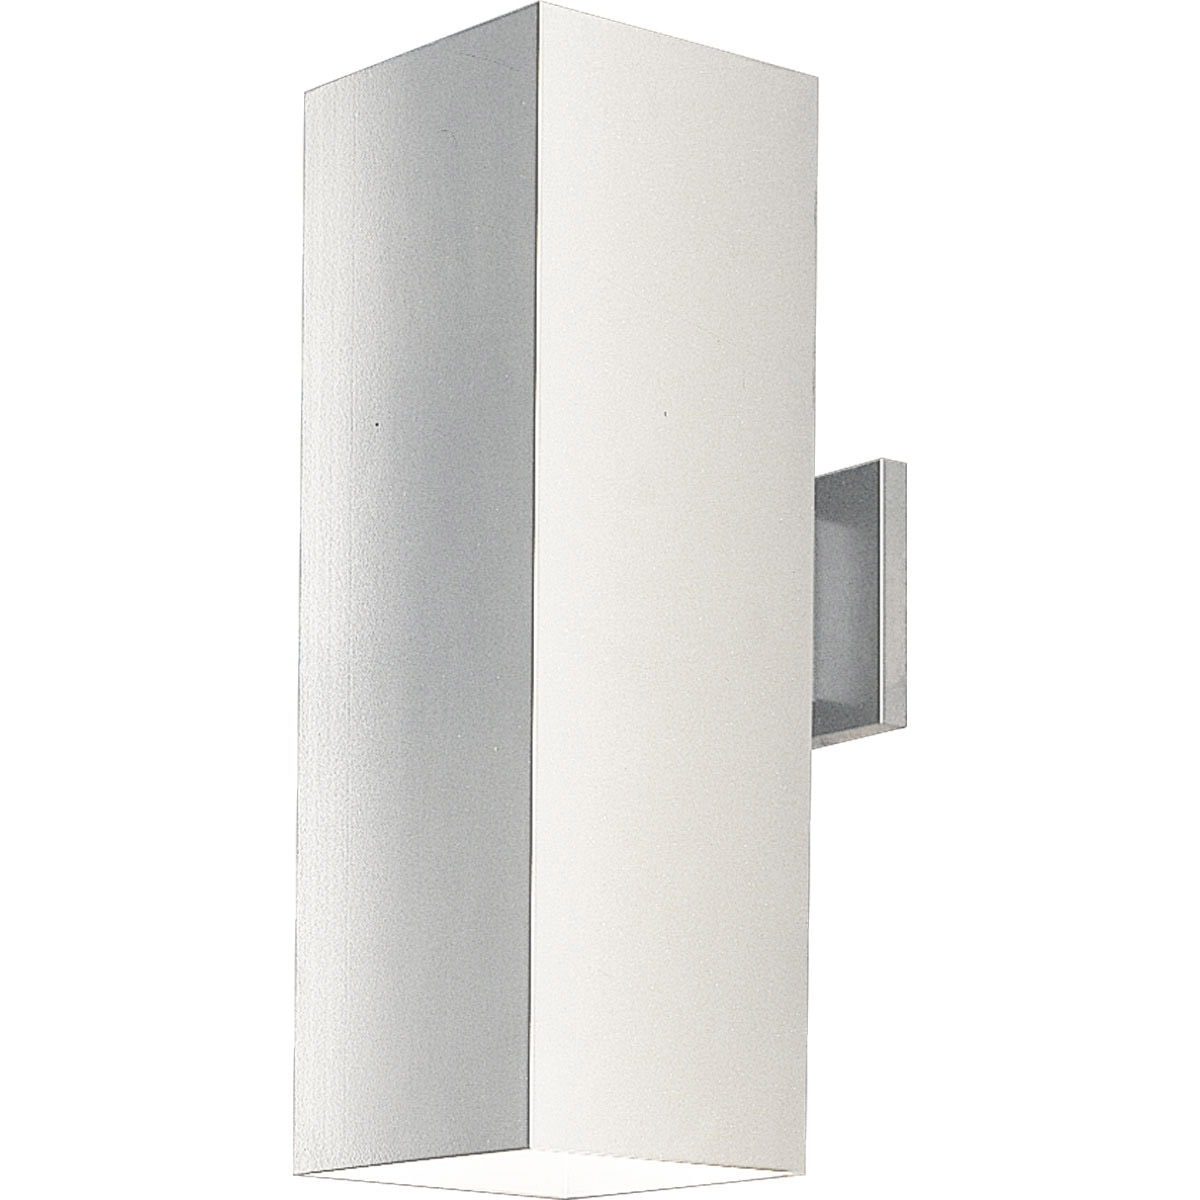 Recent Lighting P5644 30 Square Outdoor Wall Mount Fixture Within White Outdoor Wall Mounted Lighting (Gallery 18 of 20)